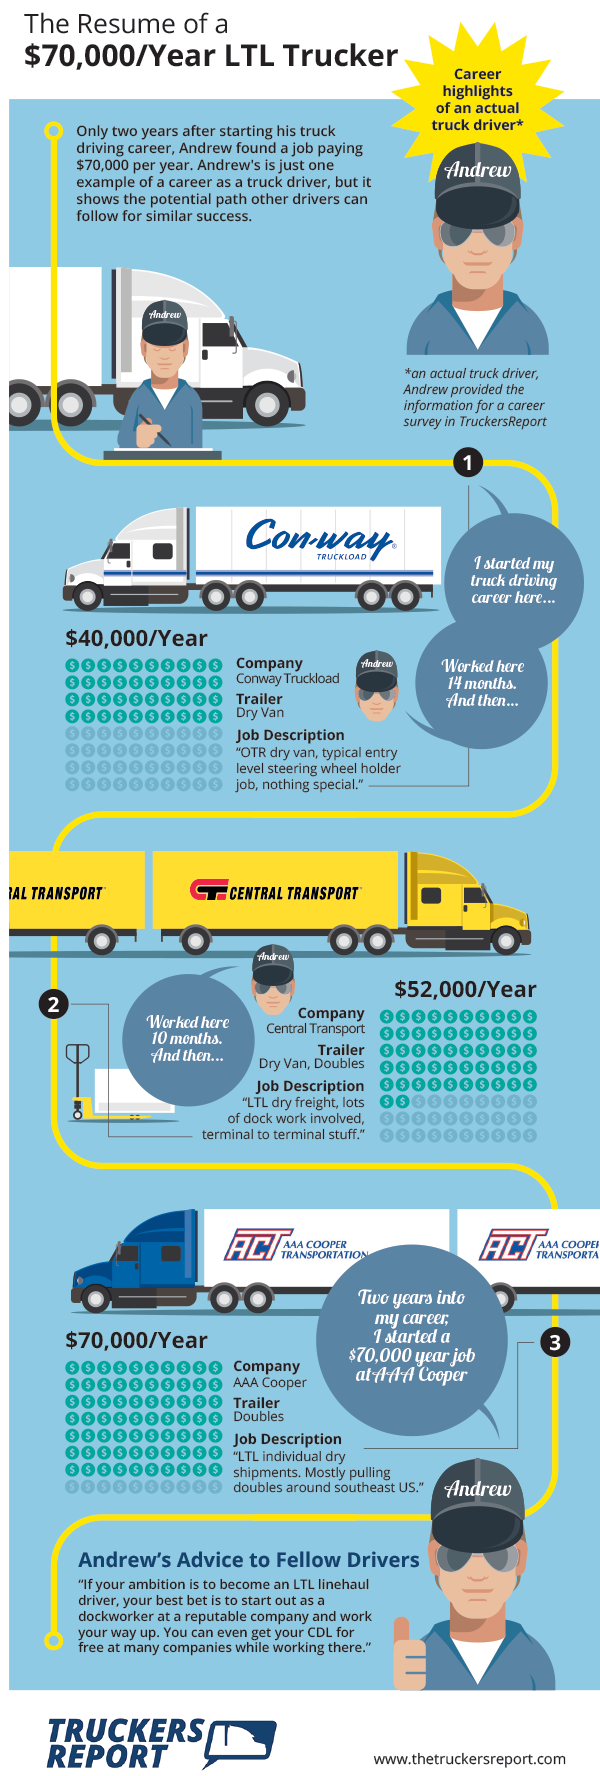 How To Cdl School To 70 000 Truck Driving Job In 2 Years